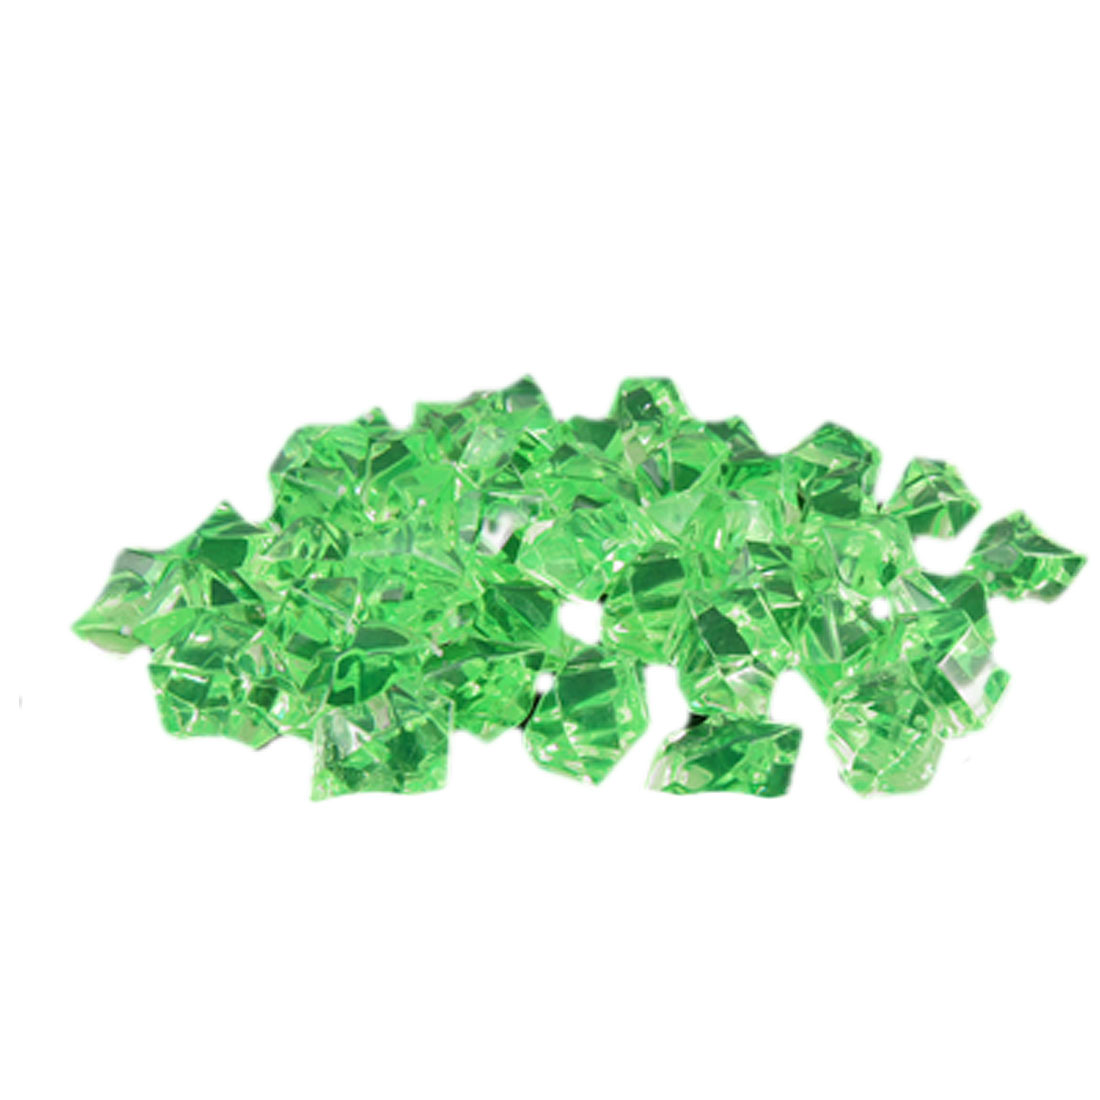 Artifical Green Crystals Ornament for Aquarium 60 Pcs